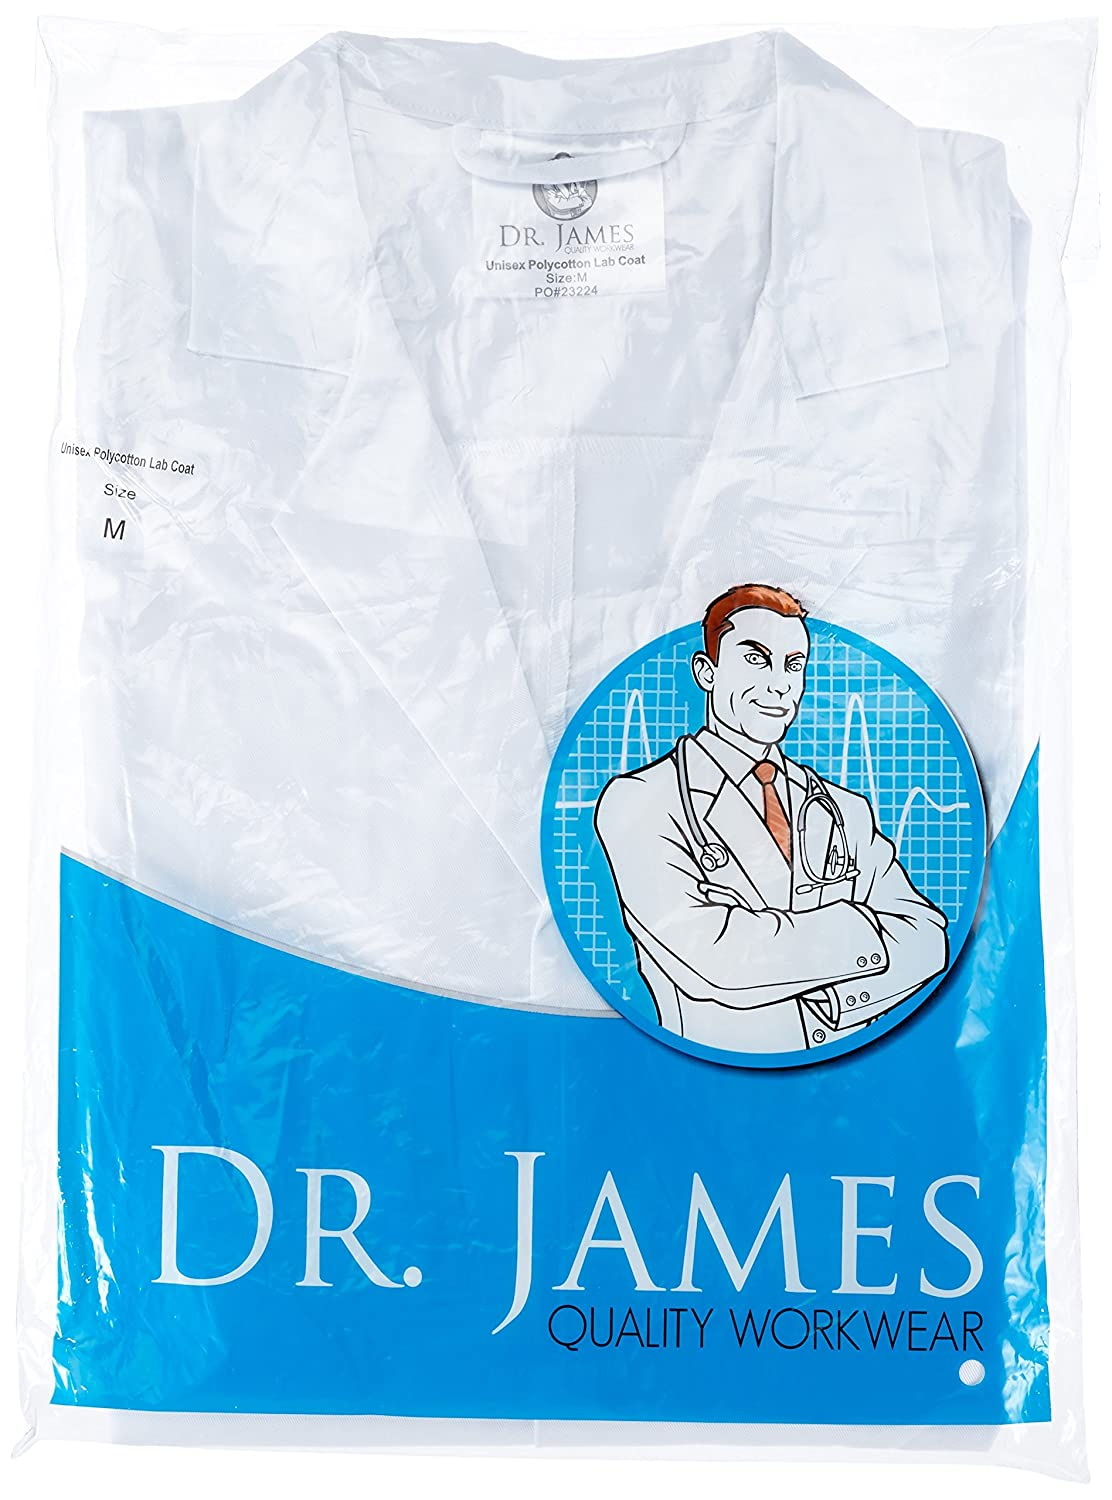 Dr. James Estudiante Laboratorio Kit - Bata de Laboratorio y Gafas de Protección: Amazon.es: Industria, empresas y ciencia